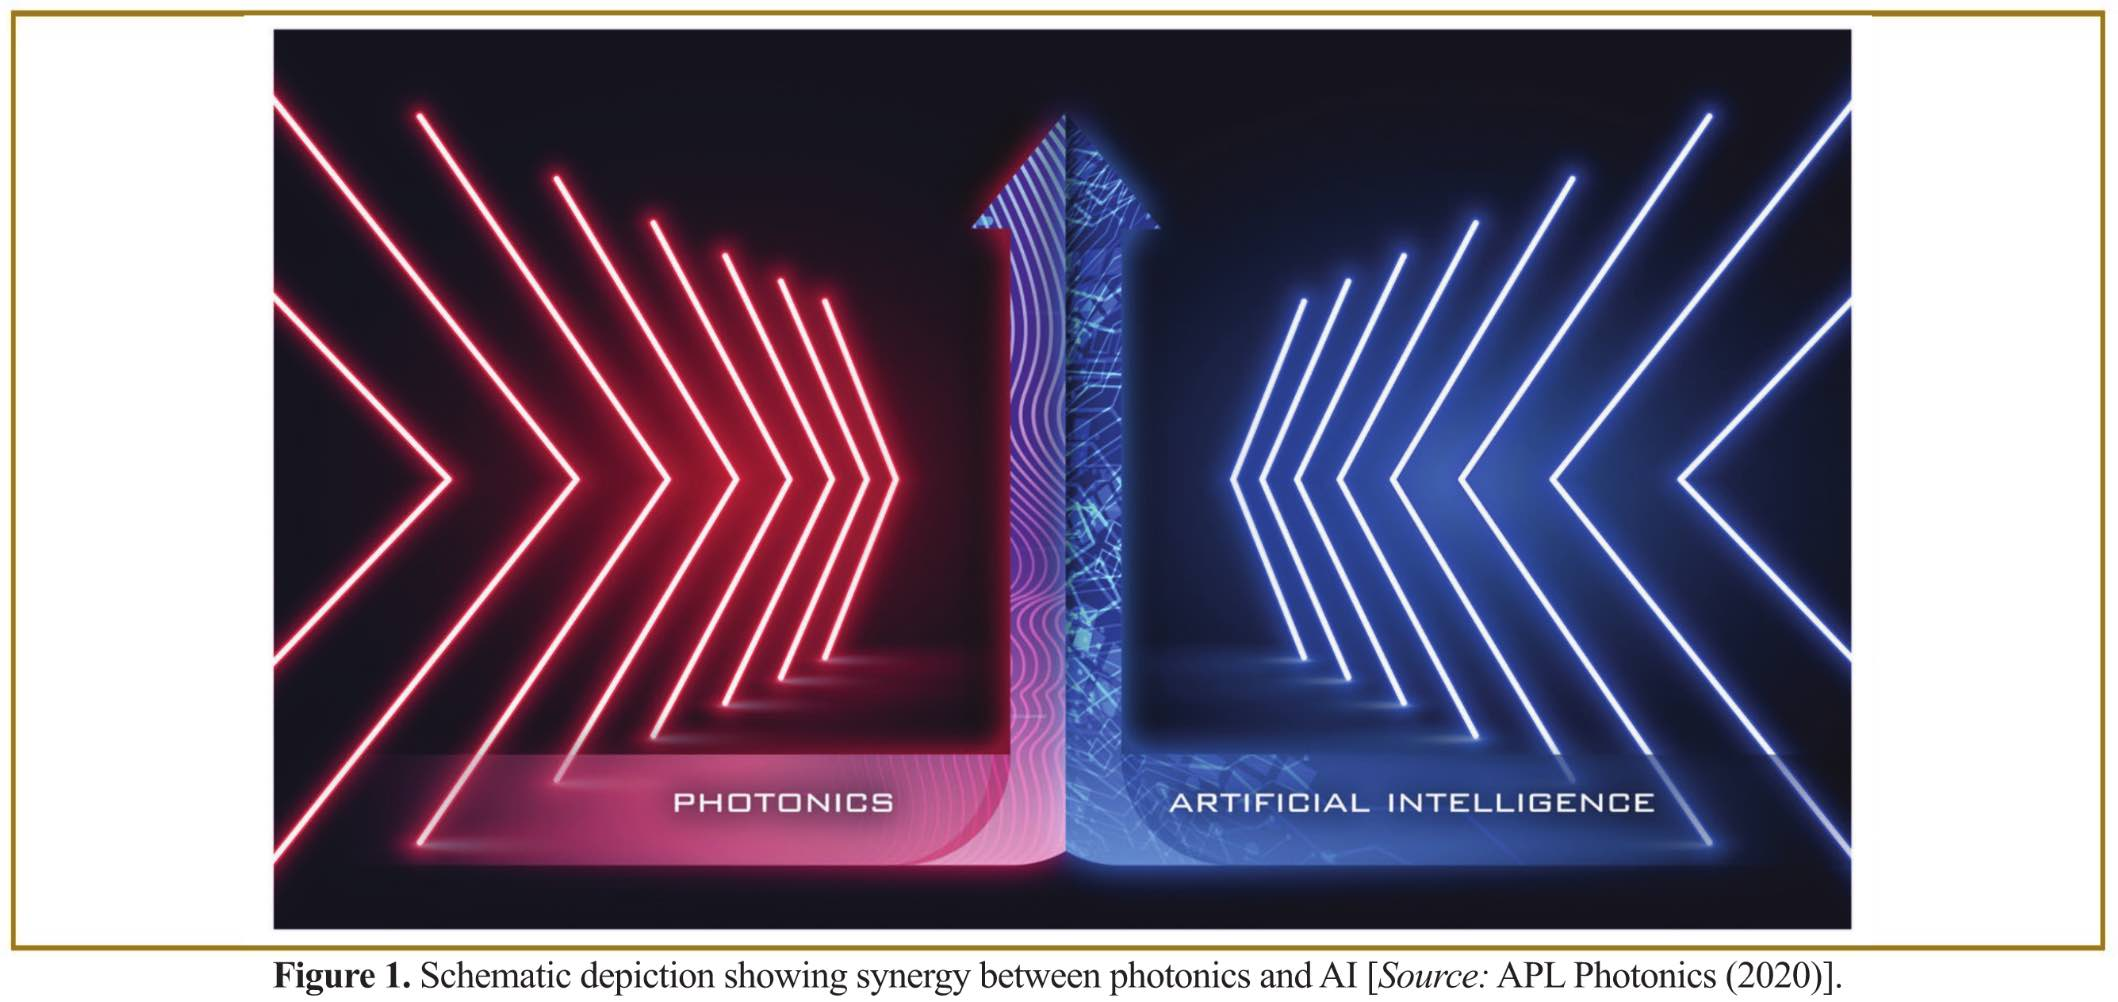 Combining Artificial Intelligence and Photonics for Advanced Technology Applications